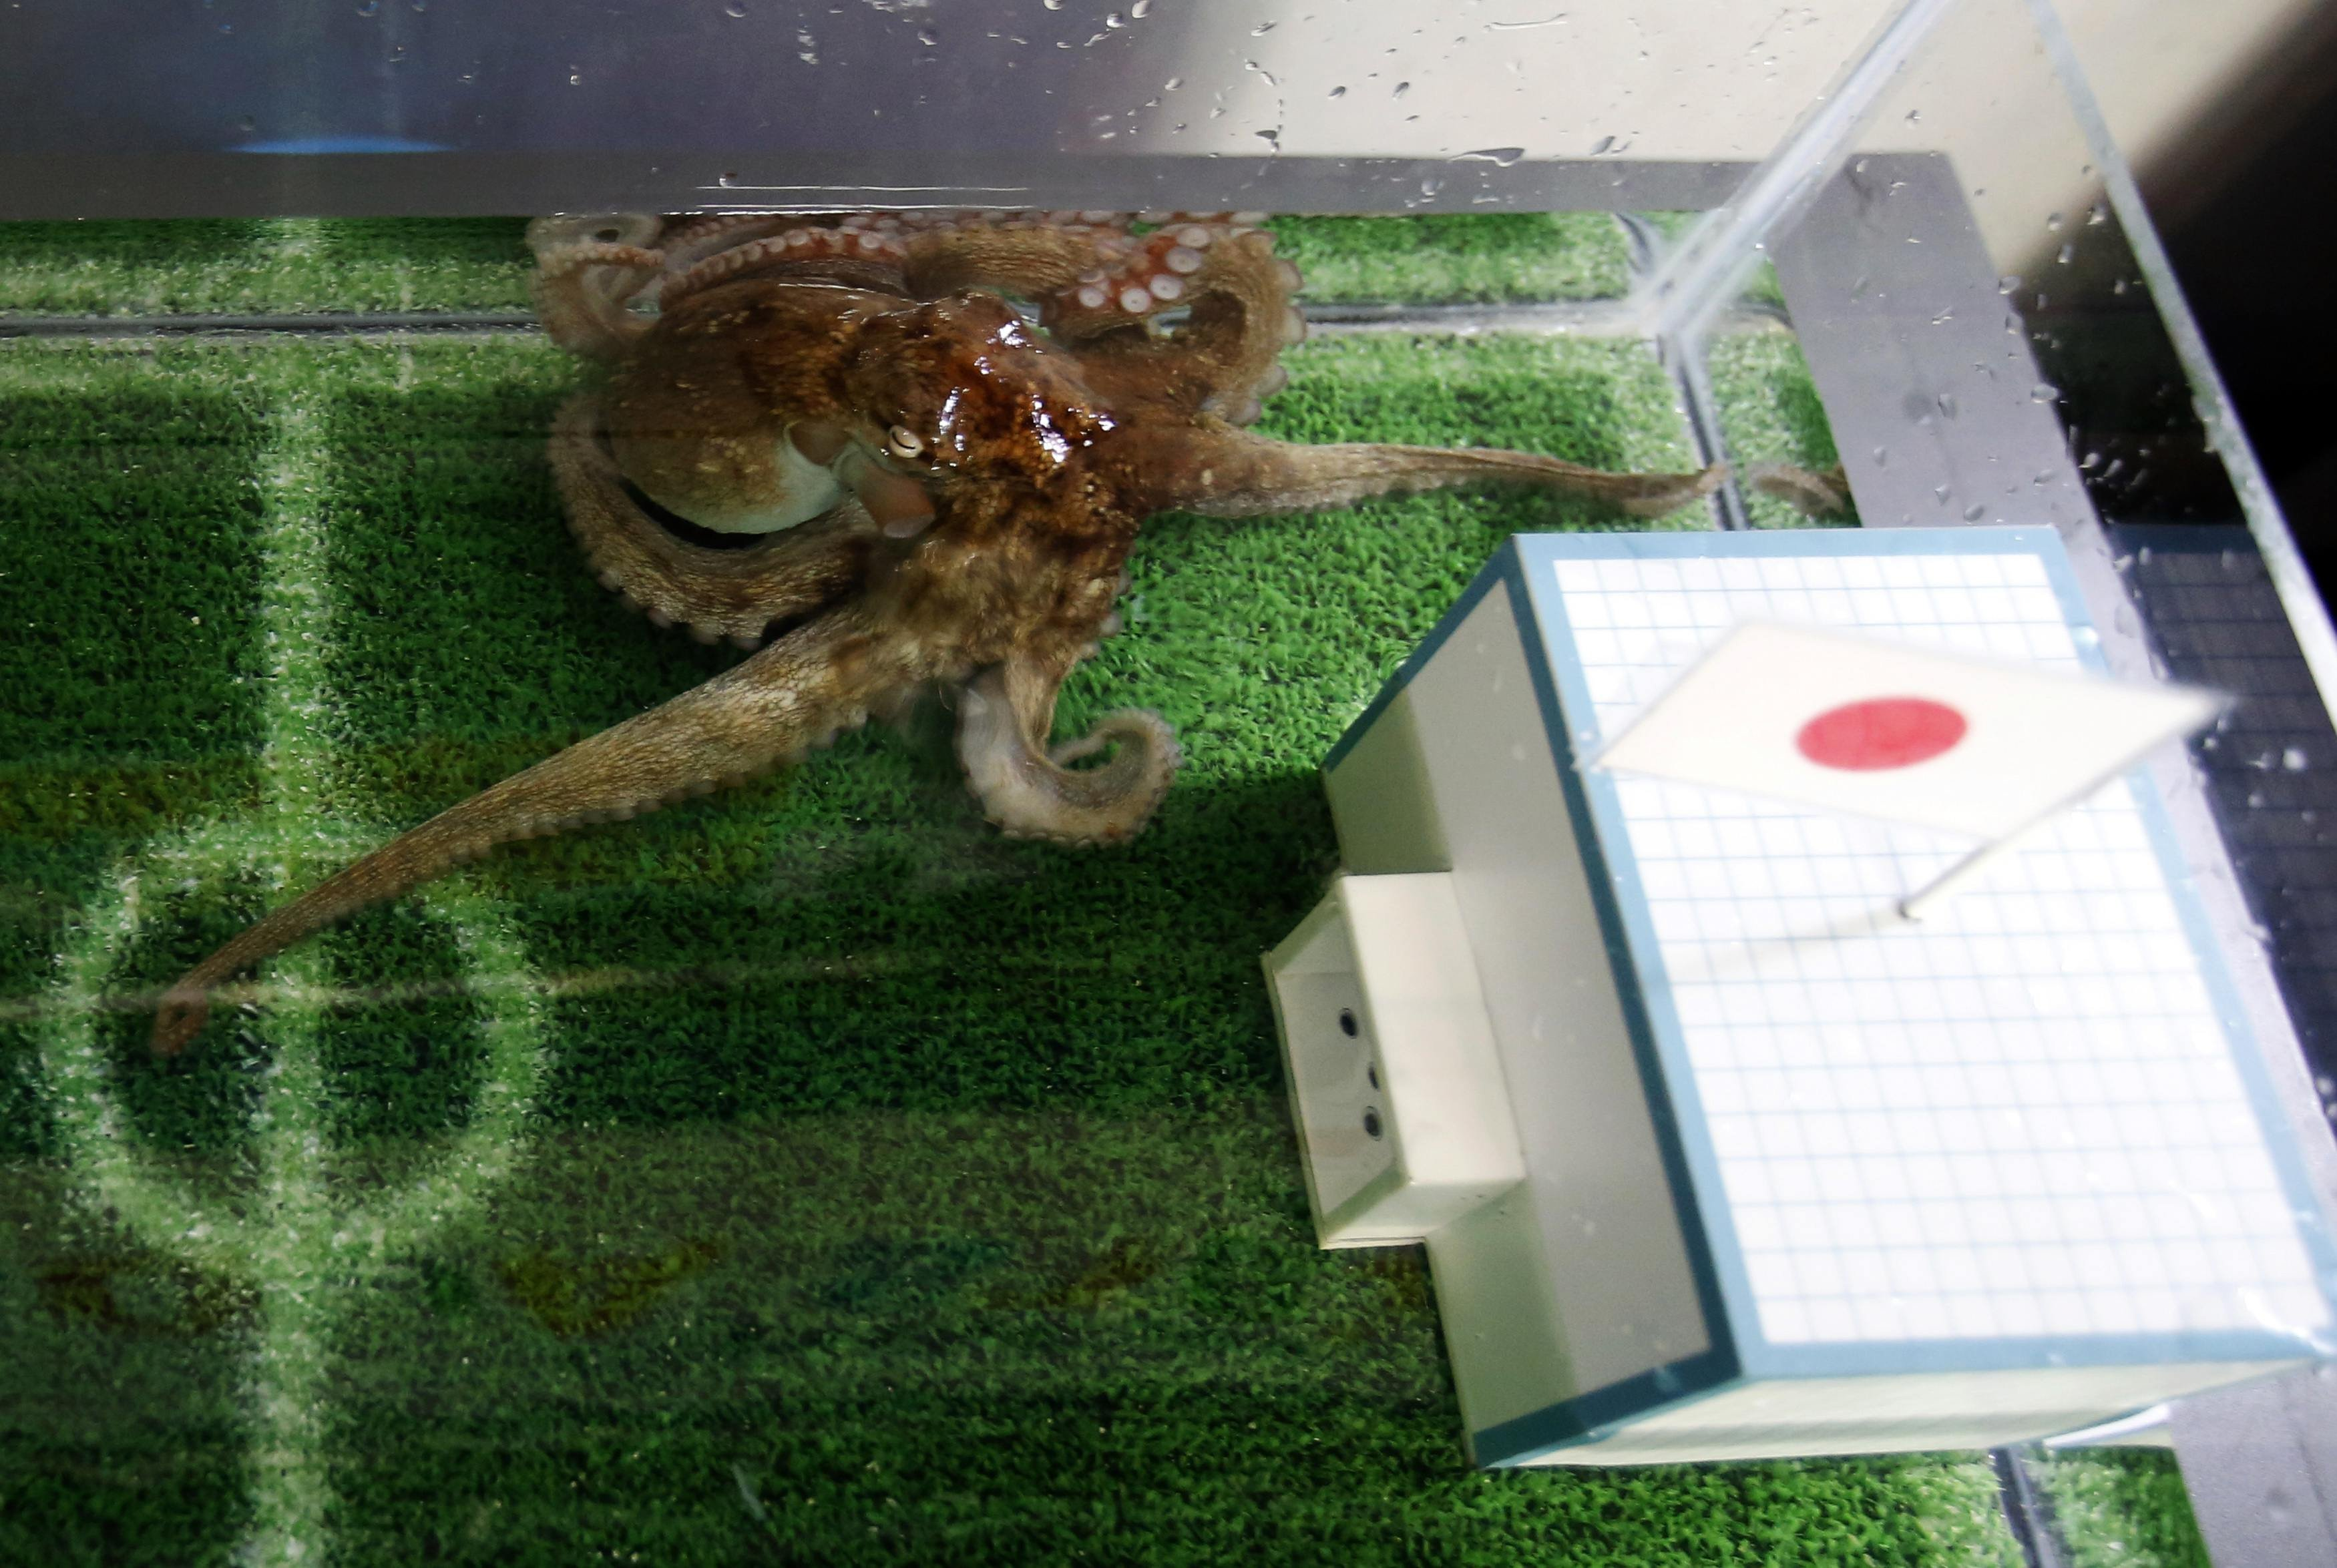 An octopus named Hacchan predicts Japan's victory in their match against Ivory Coast by choosing the mock goal with the Japanese national flag, at Shinagawa Aqua Stadium aquarium in Tokyo June 13, 2014.